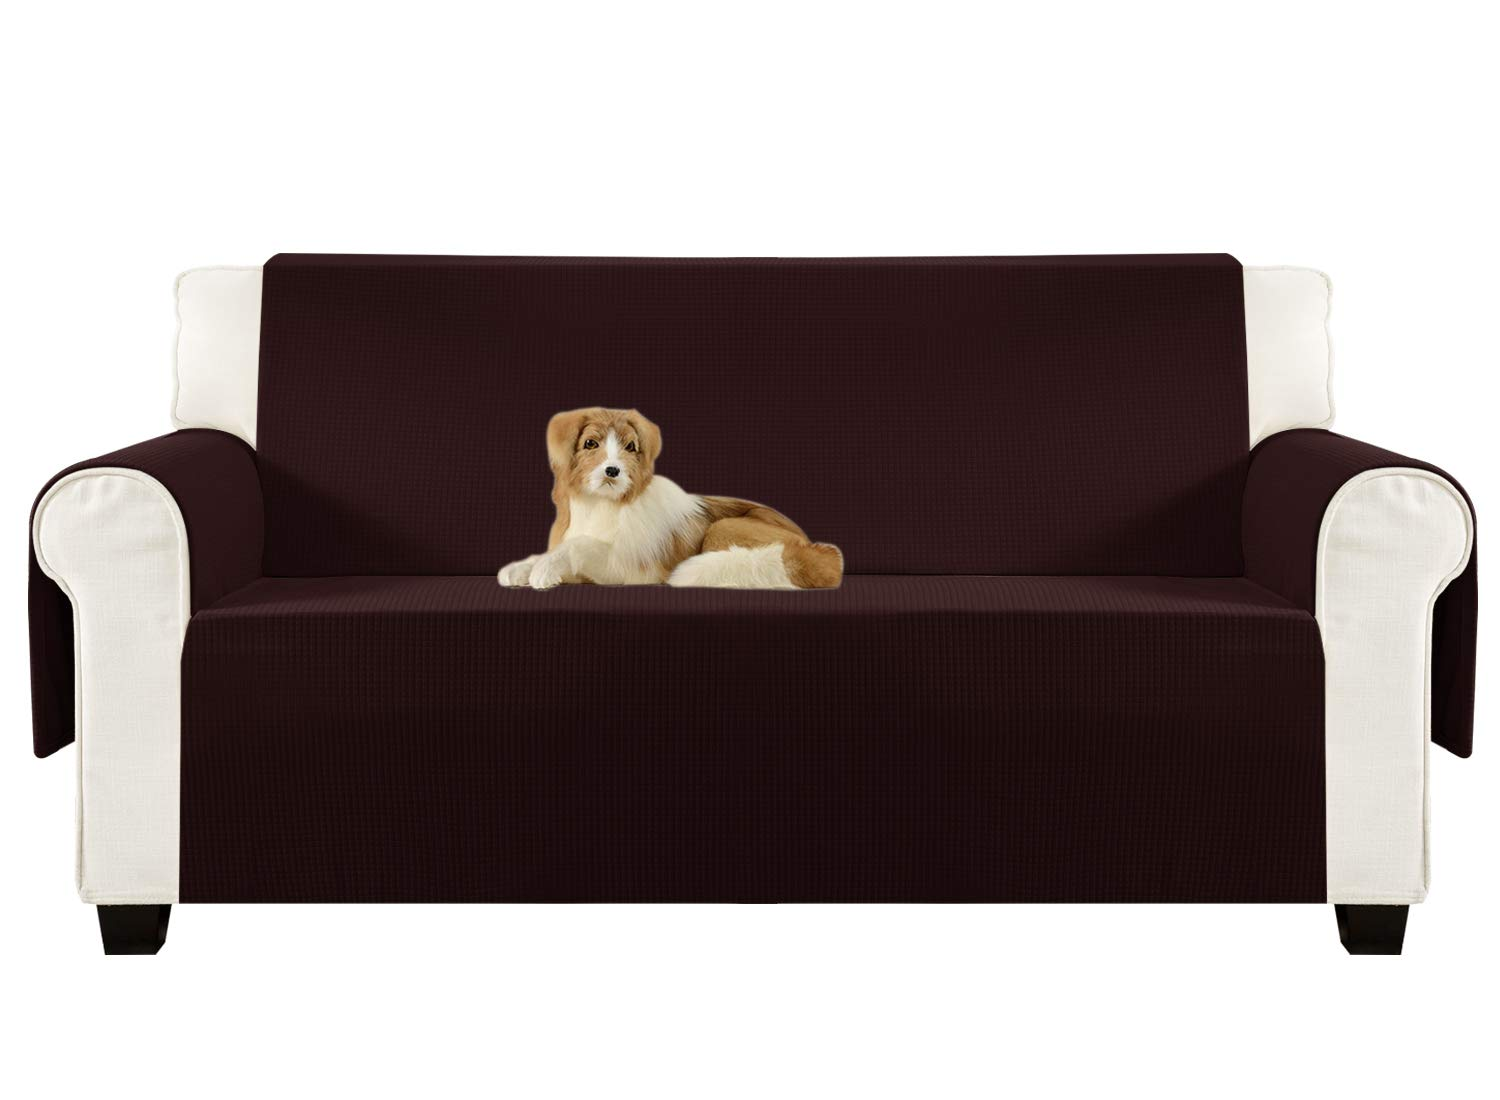 Aidear Anti-Slip Sofa Slipcovers Jacquard Fabric Pet Dog Couch Covers Protectors (Sofa: Oversized, Dark Brown)